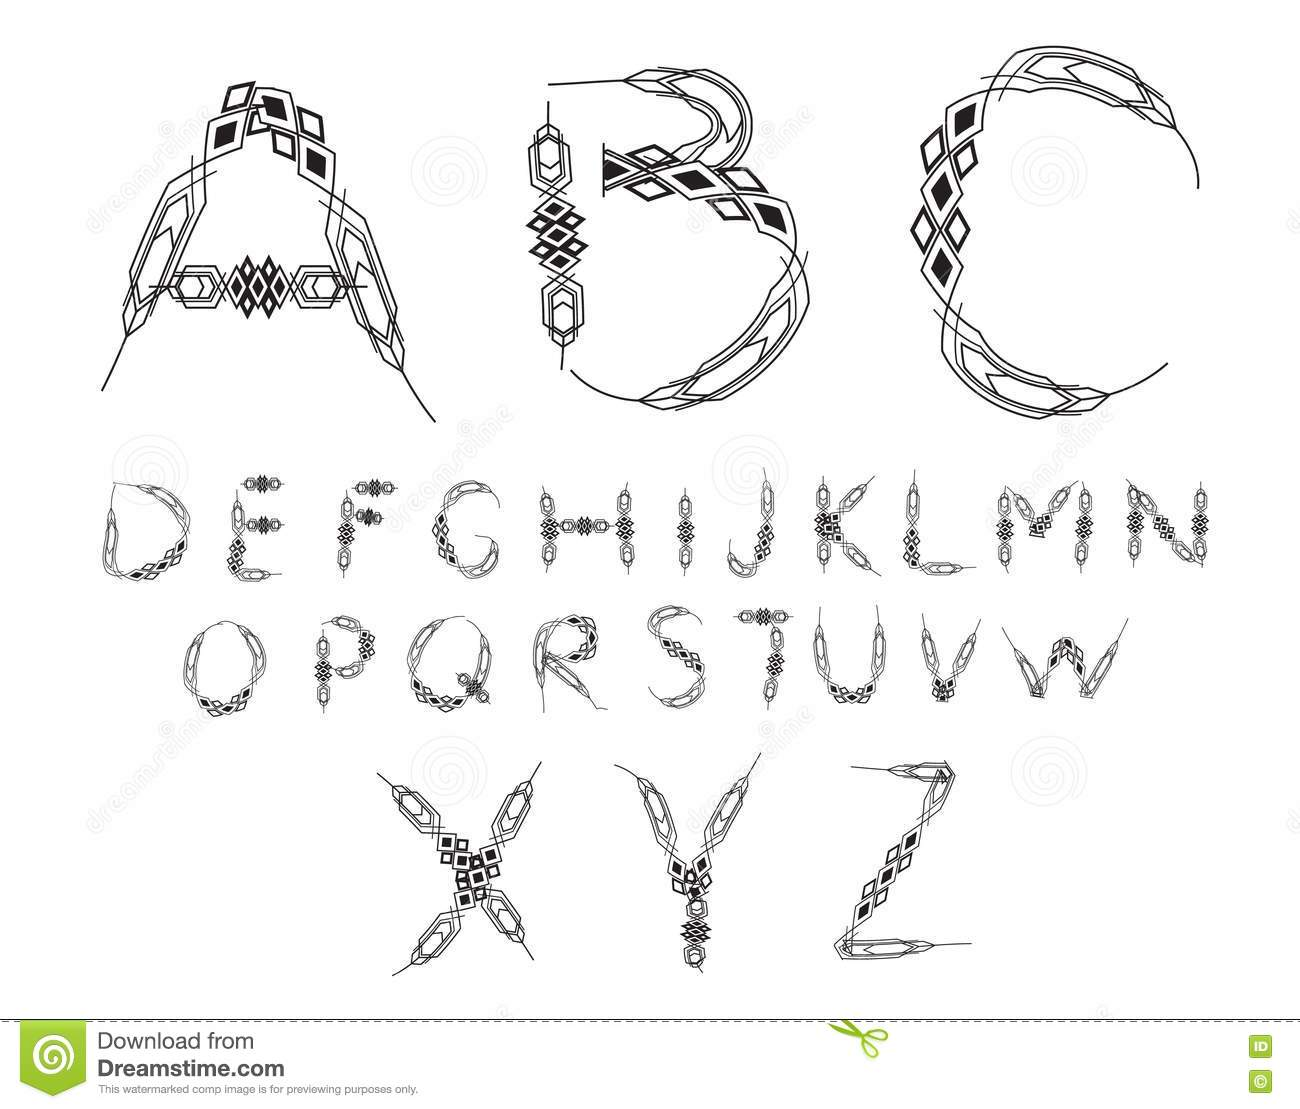 Alphabet Letters Images, Stock Pictures, Royalty Free